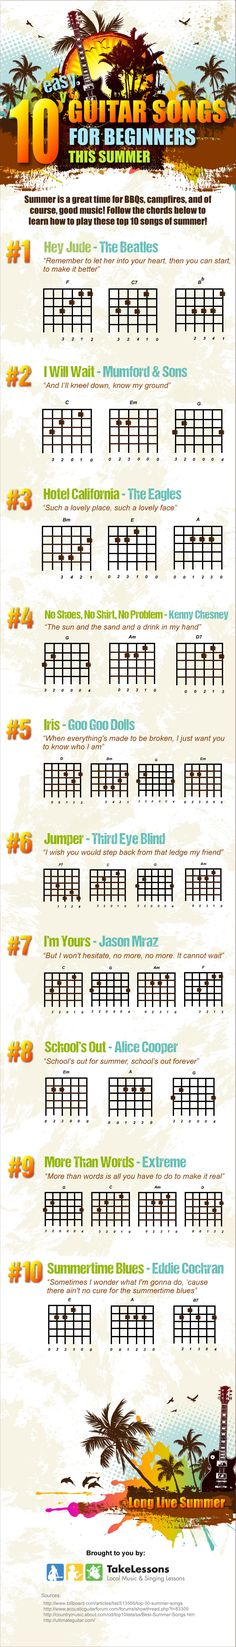 10 Easy Guitar Songs for Beginners This Summer (not left handed though)